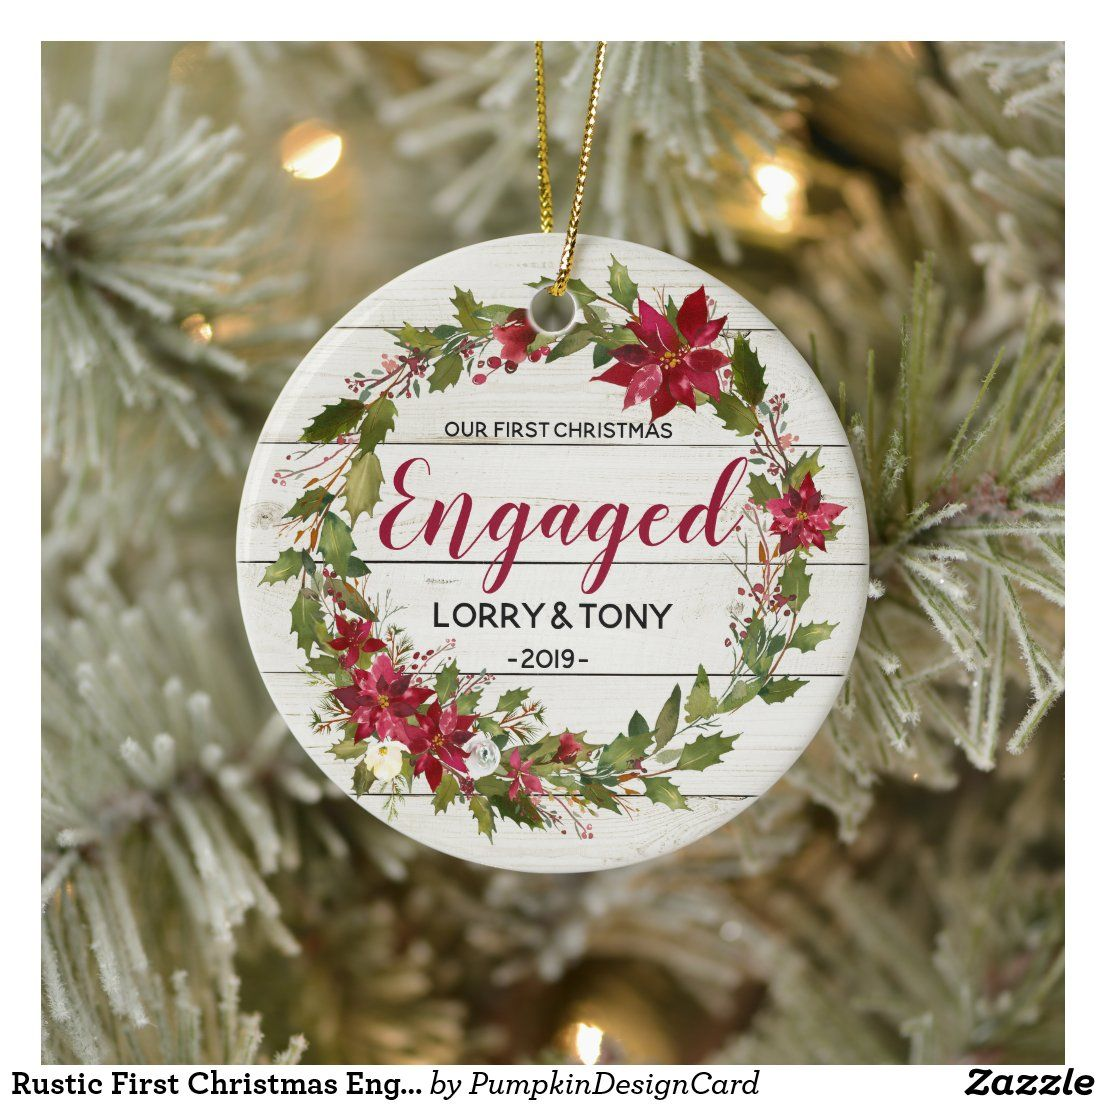 Rustic First Christmas Engaged Ornament in